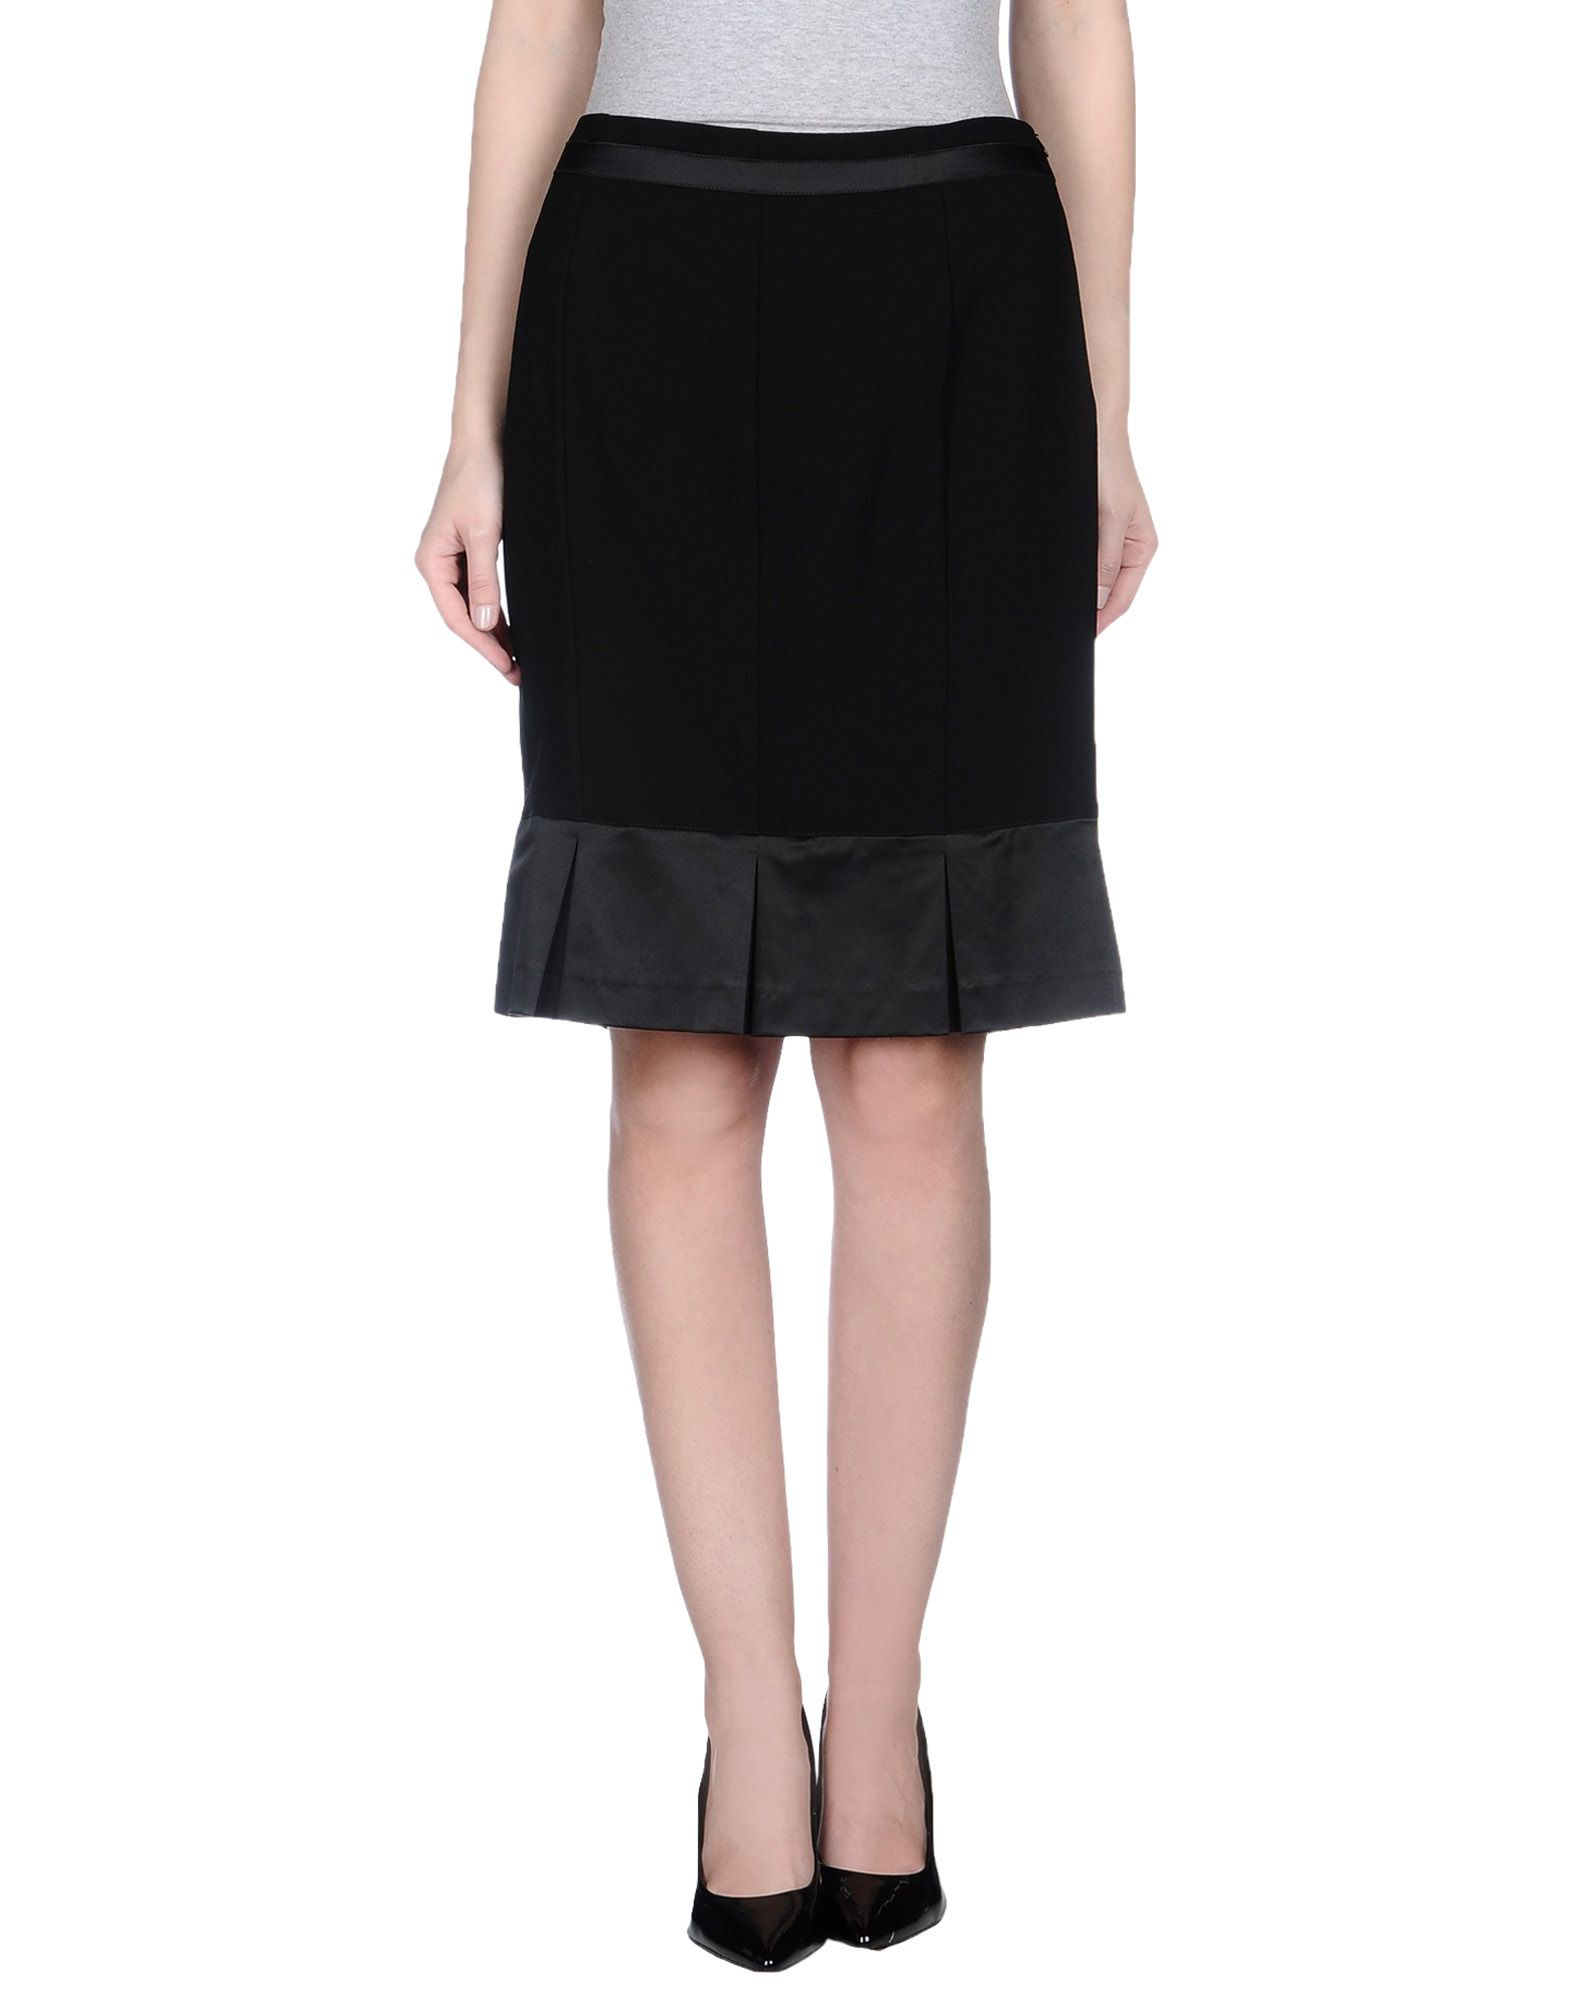 Lyst - Love Sex Money Collection Knee Length Skirt In Black-4152